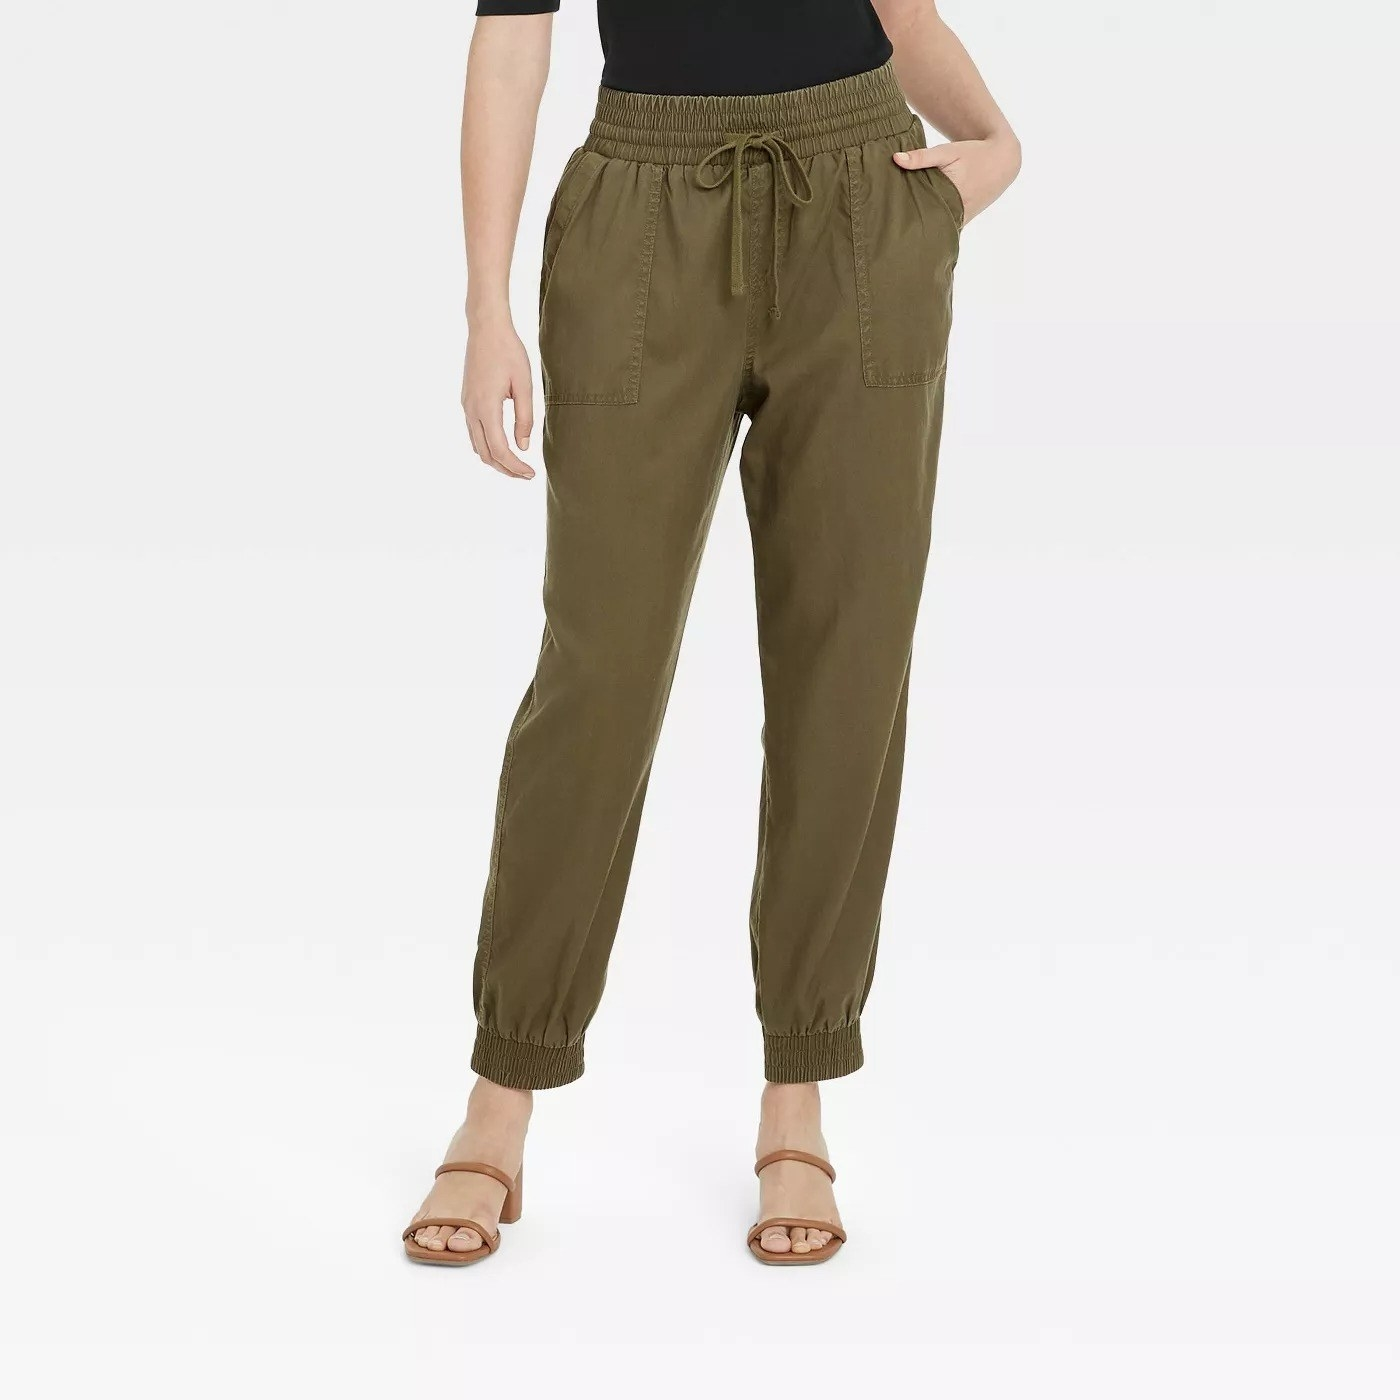 Model wearing green pants with side pockets and tie string detail around waist